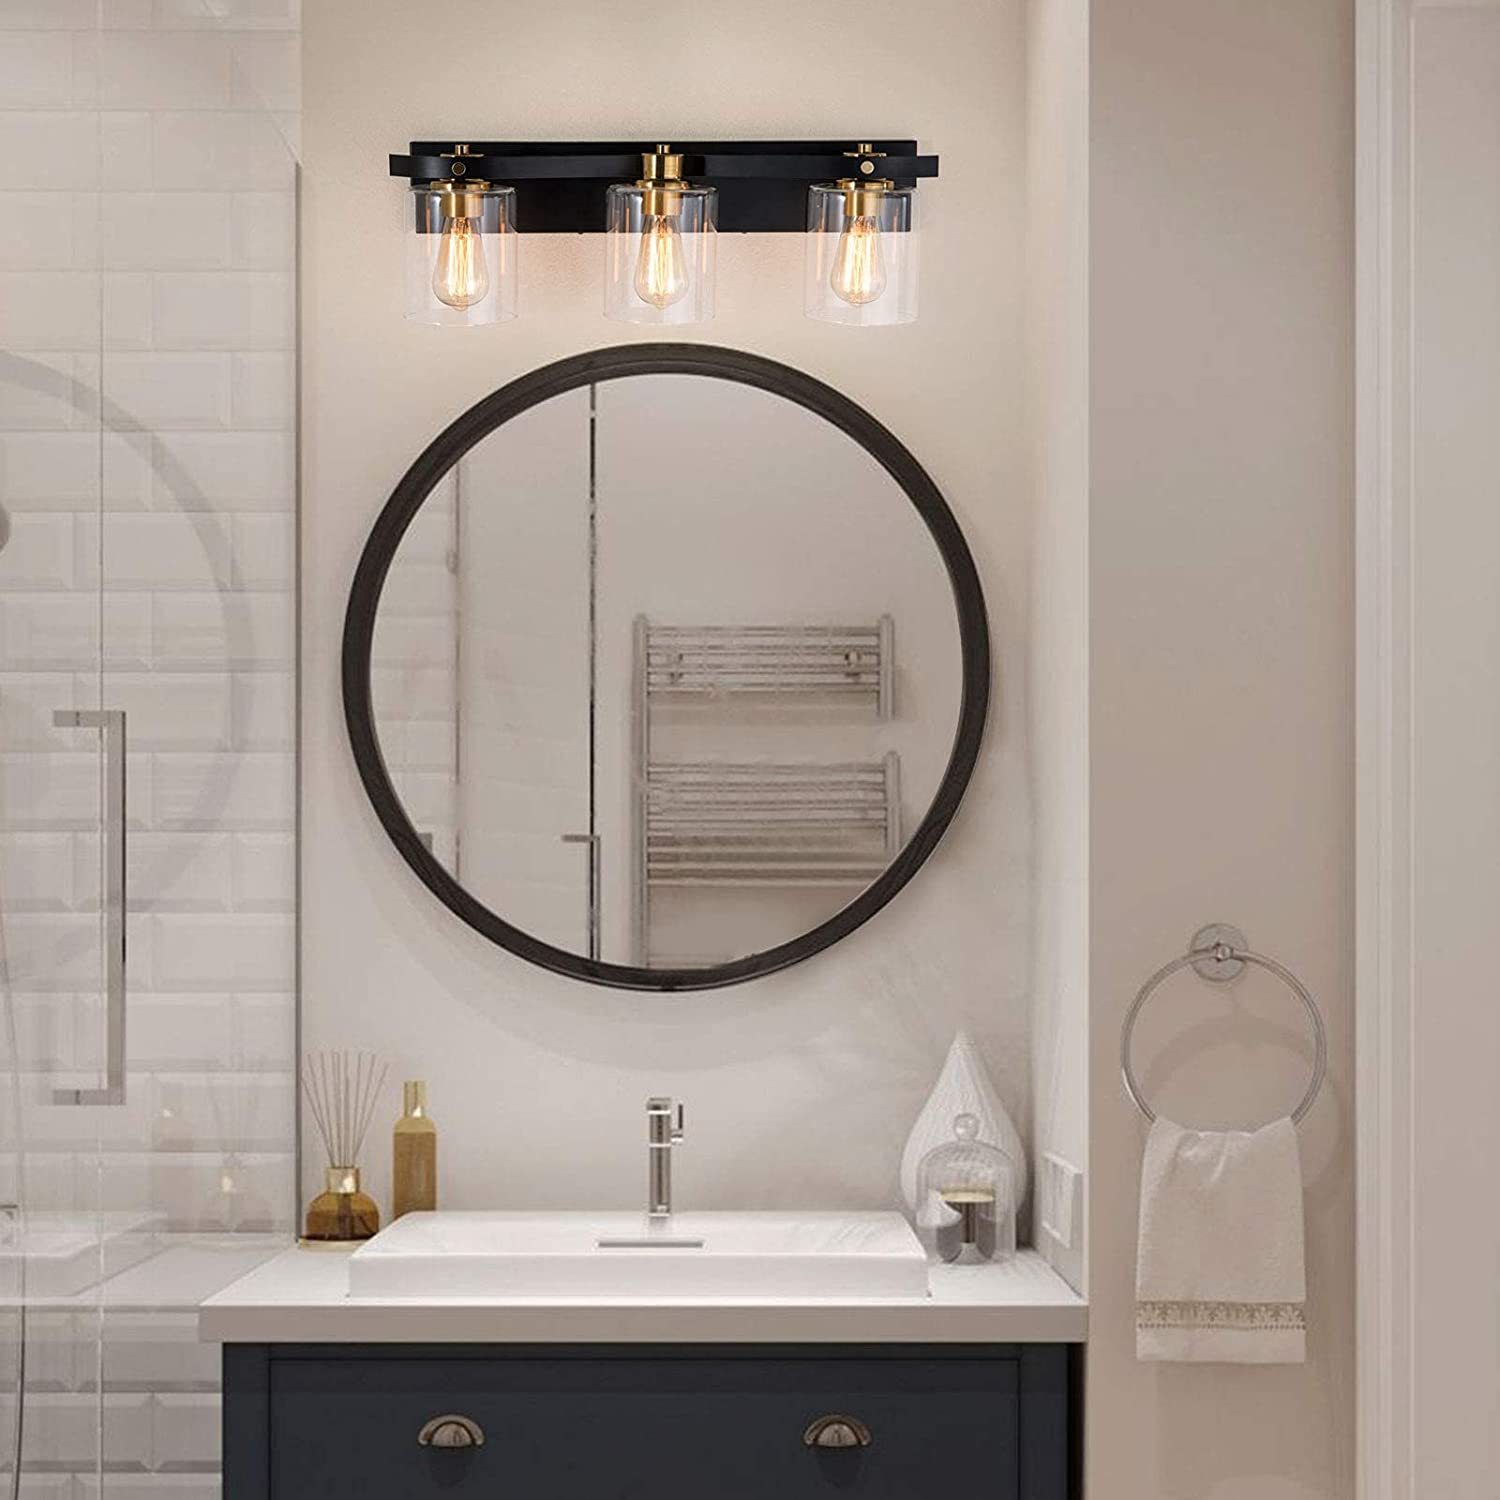 Buy Modern Bathroom Light Fixtures Linour Bathroom Vanity Light Fixtures Bathroom Lighting Over Mirror With Clear Glass Shade Up Down Light Direction Industrial Light Fixtures For Bathroom No Bulbs Hellip Online In Indonesia B08lv9l3ts